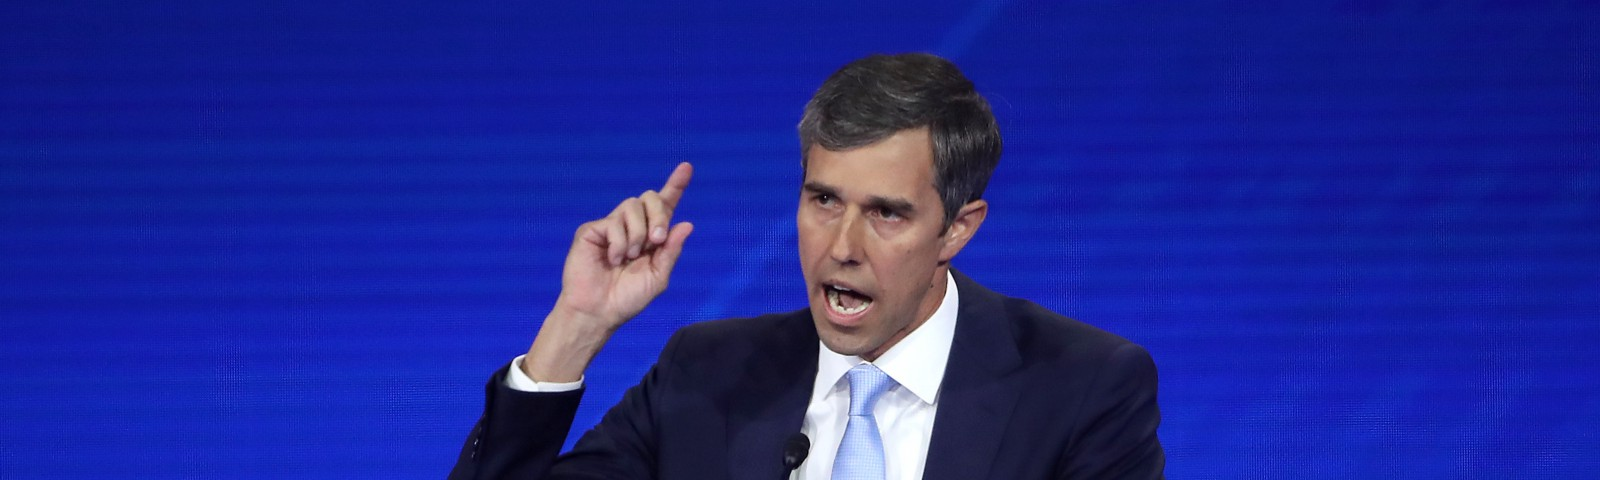 A photo of Beto O'Rourke speaking during the Democratic Presidential Debate inHouston, Texas.